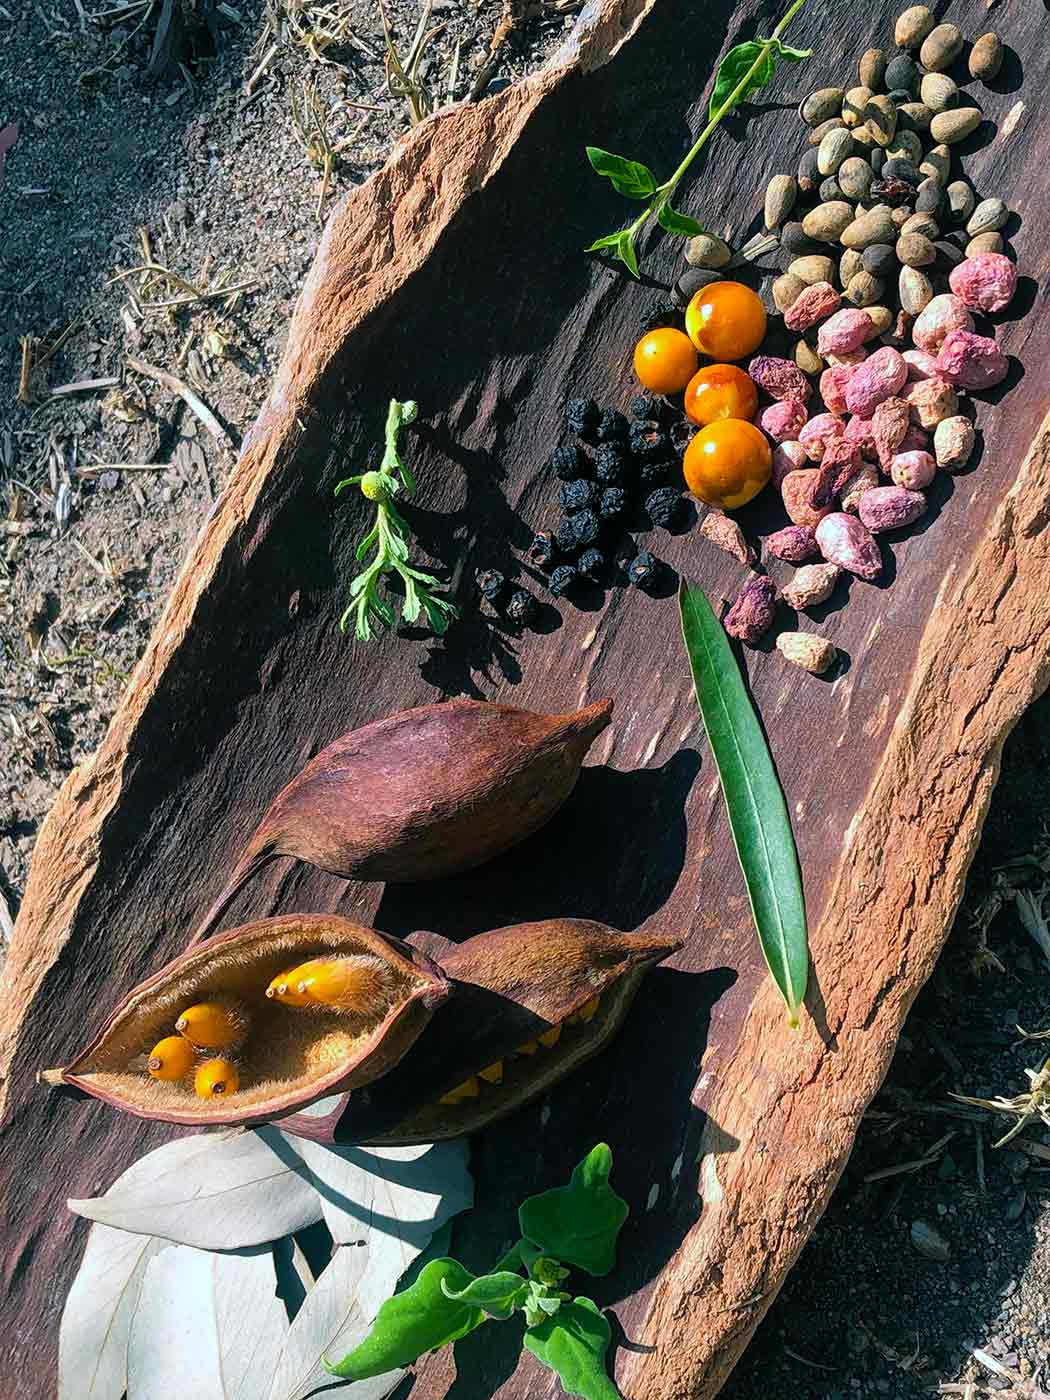 An assortment of bush foods including berries and nuts displayed on a platter made from bark.